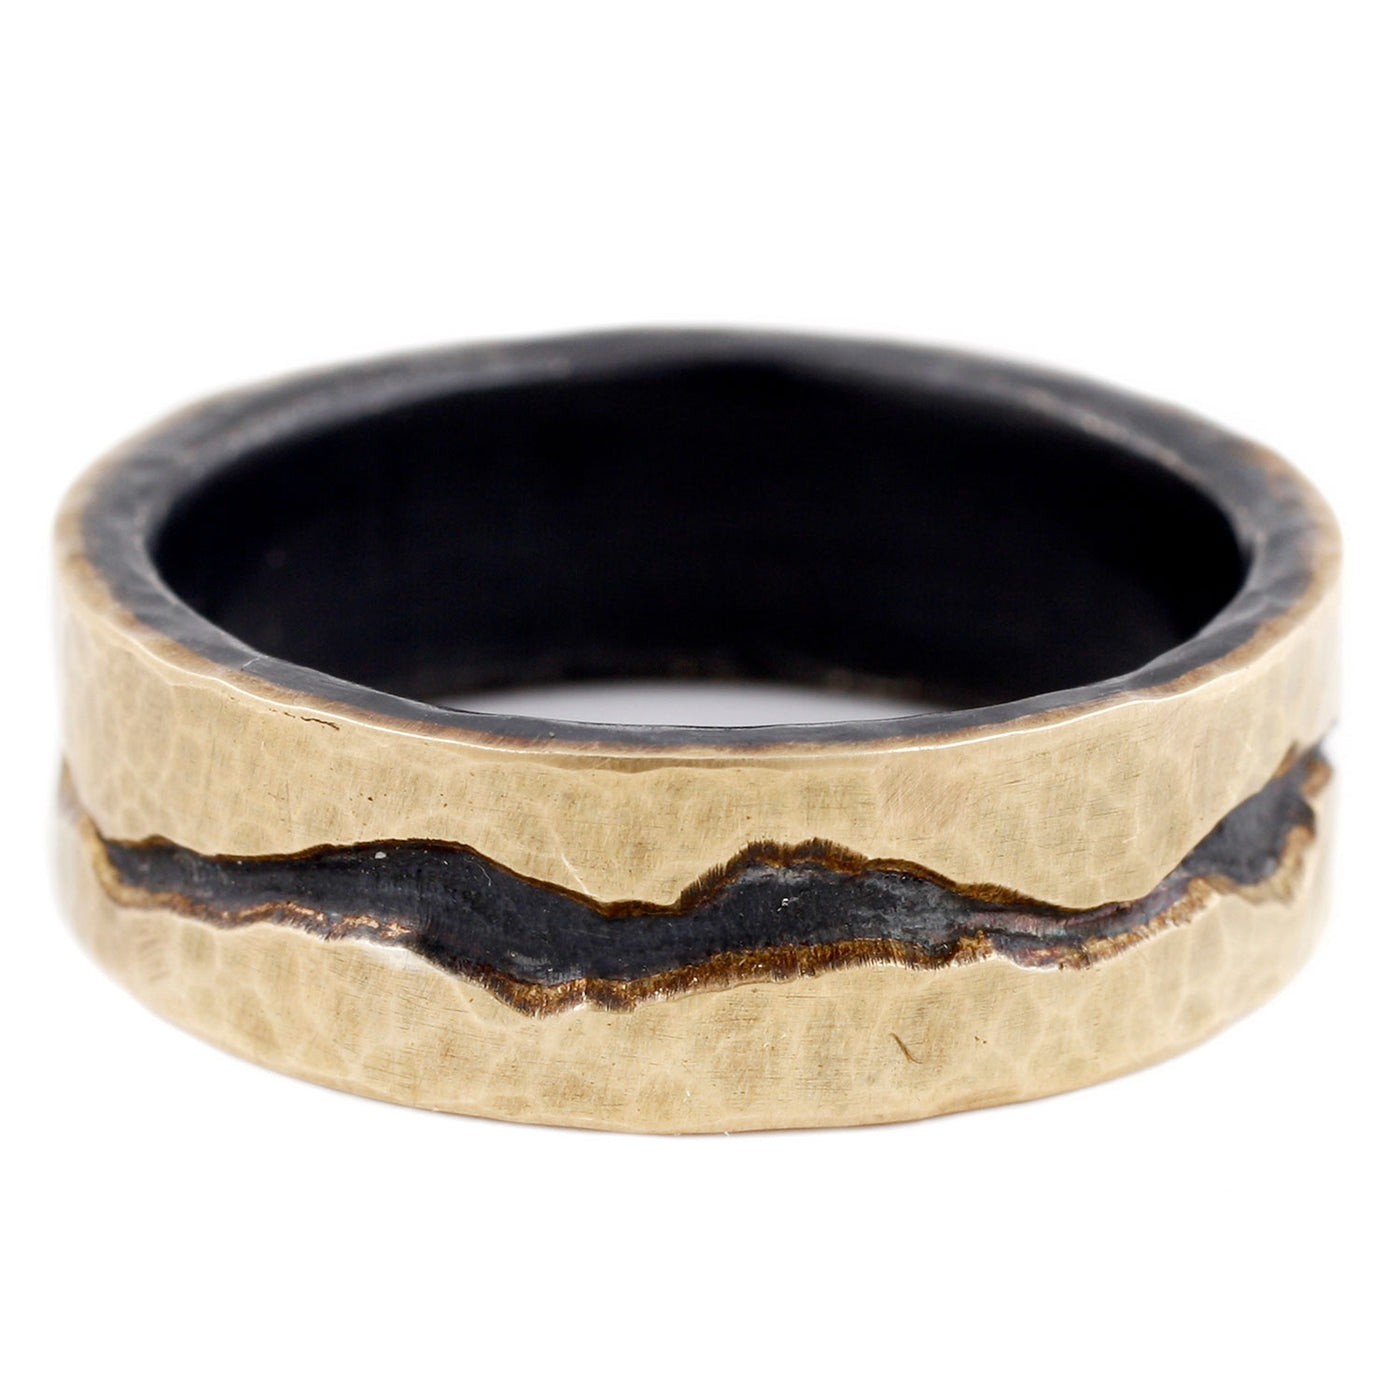 TAP by Todd Pownell Gold and Silver Band Ring